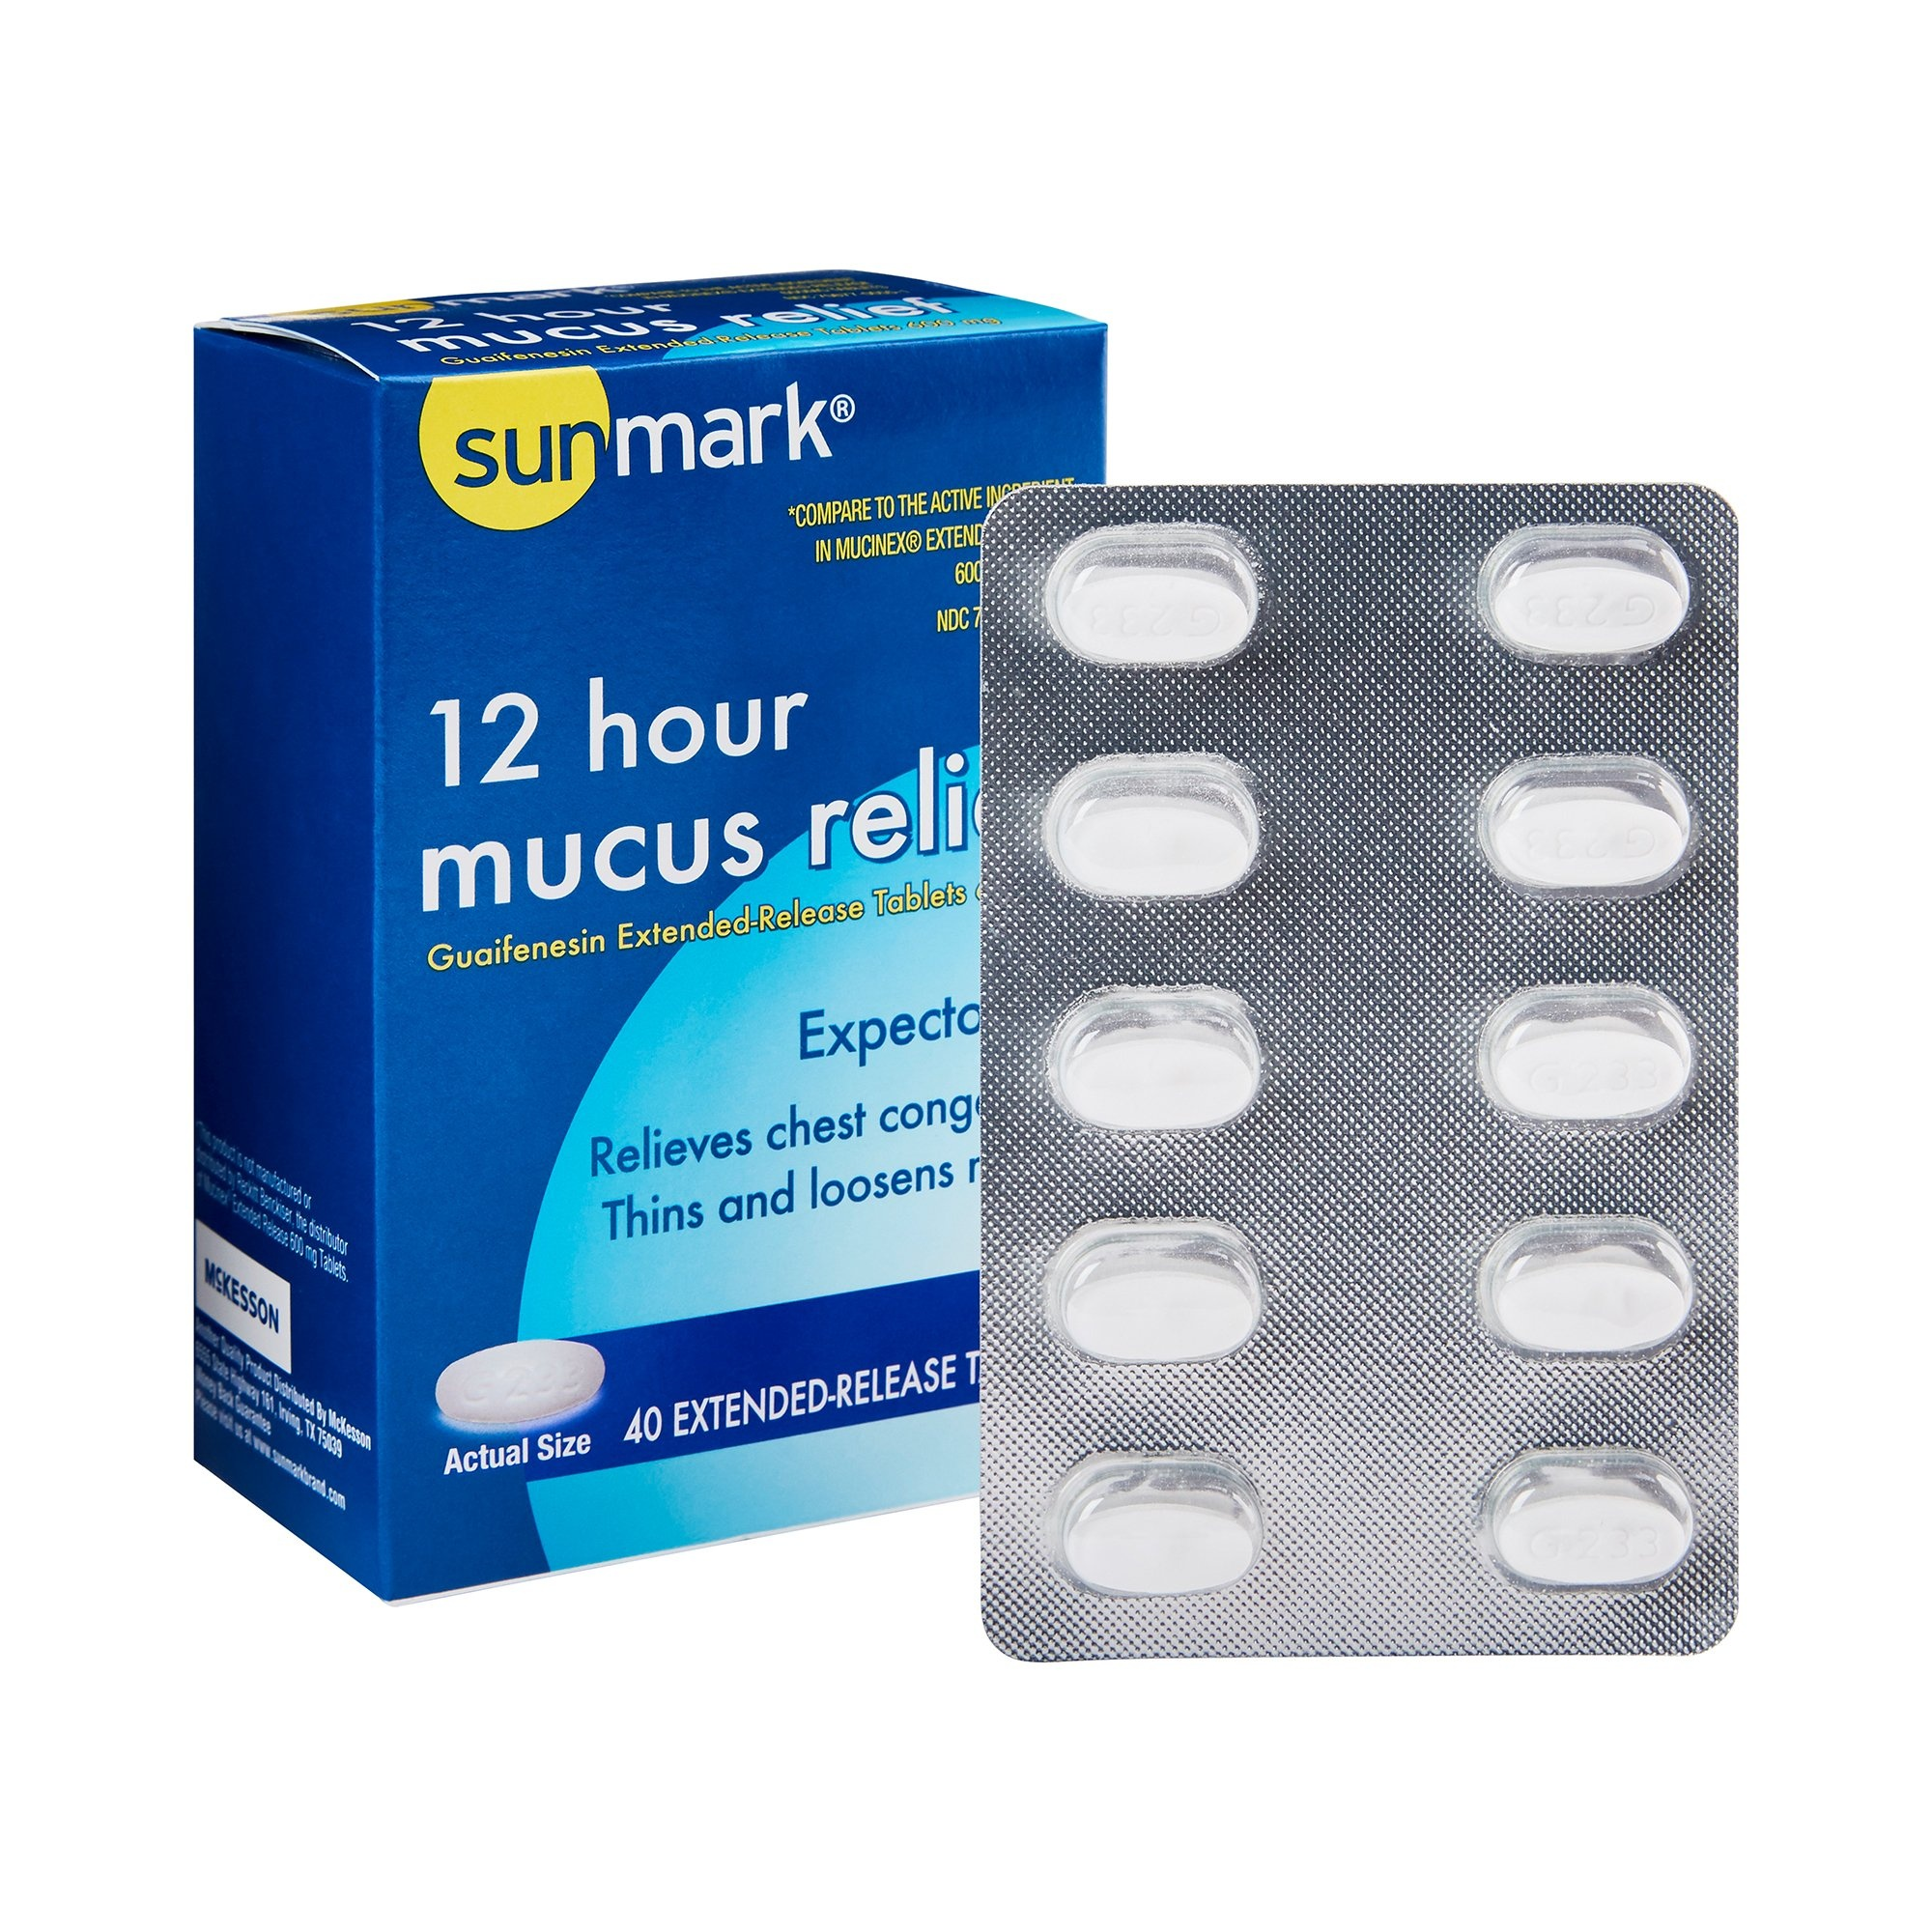 sunmark 12 Hour Mucus Relief Tablets, 600 mg, 70677005501, 40 Tablets - 1 Bottle